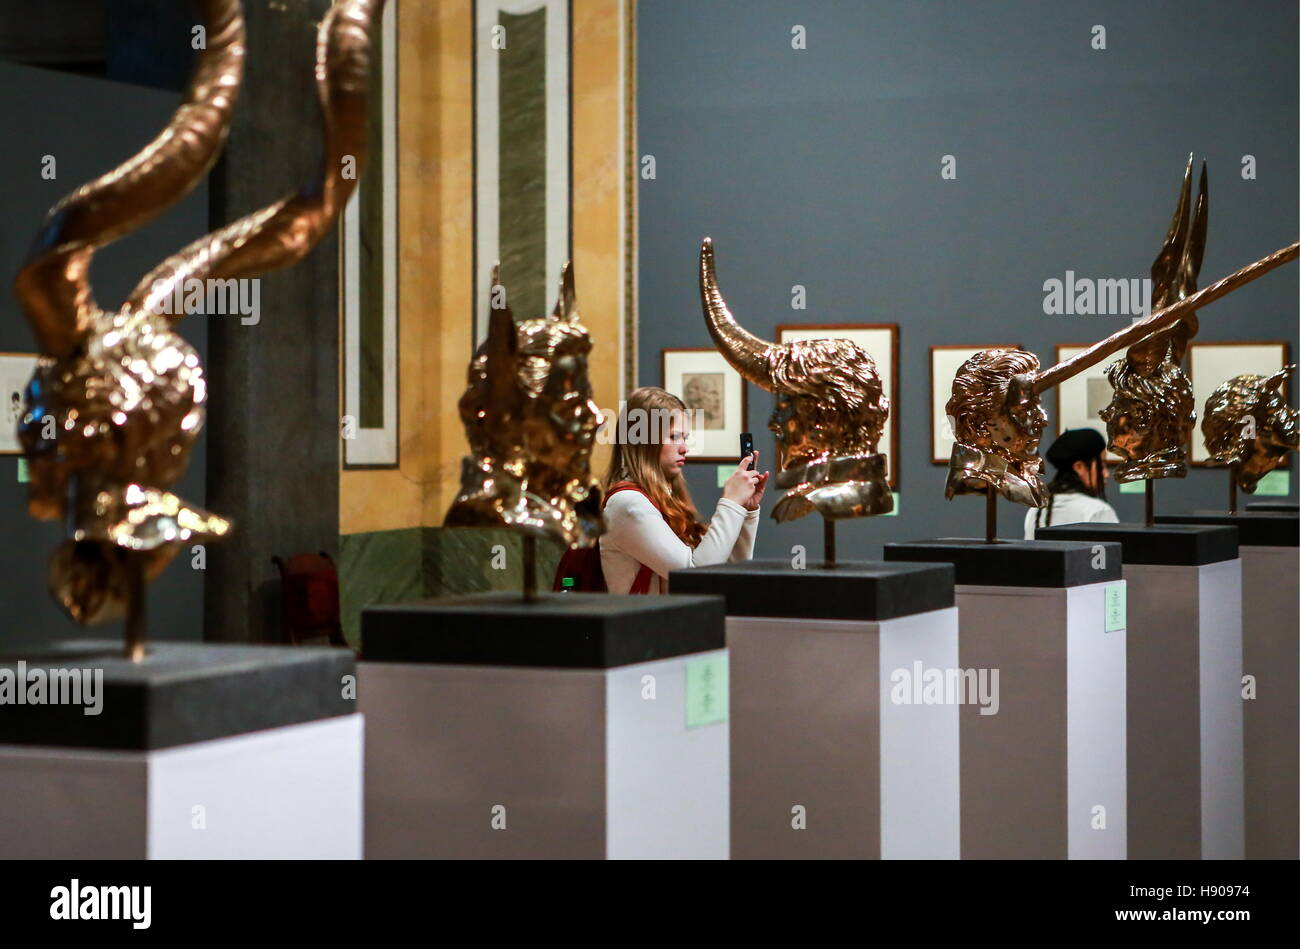 St Petersburg, Russia. 17th Nov, 2016. A visitor takes a picture of showpieces displayed at the Jan Fabre: Knight - Stock Image